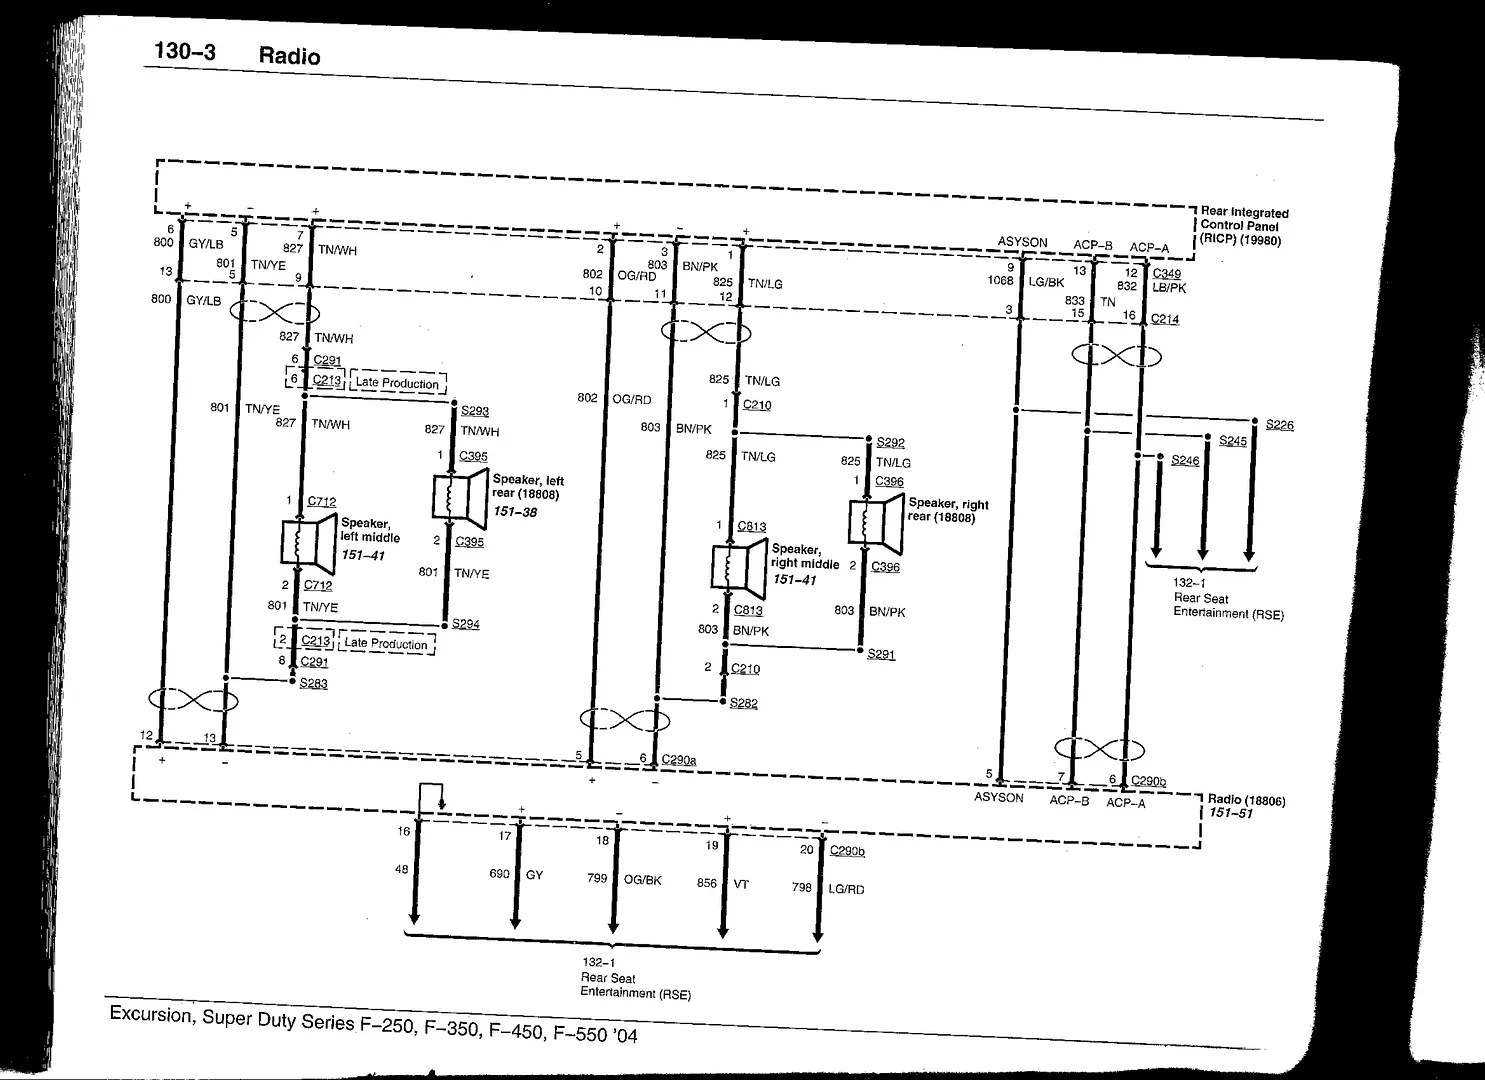 2005 Ford Expedition Stereo Wiring Diagram Keeping Factory Head Installing Aftermarket Amps Factory